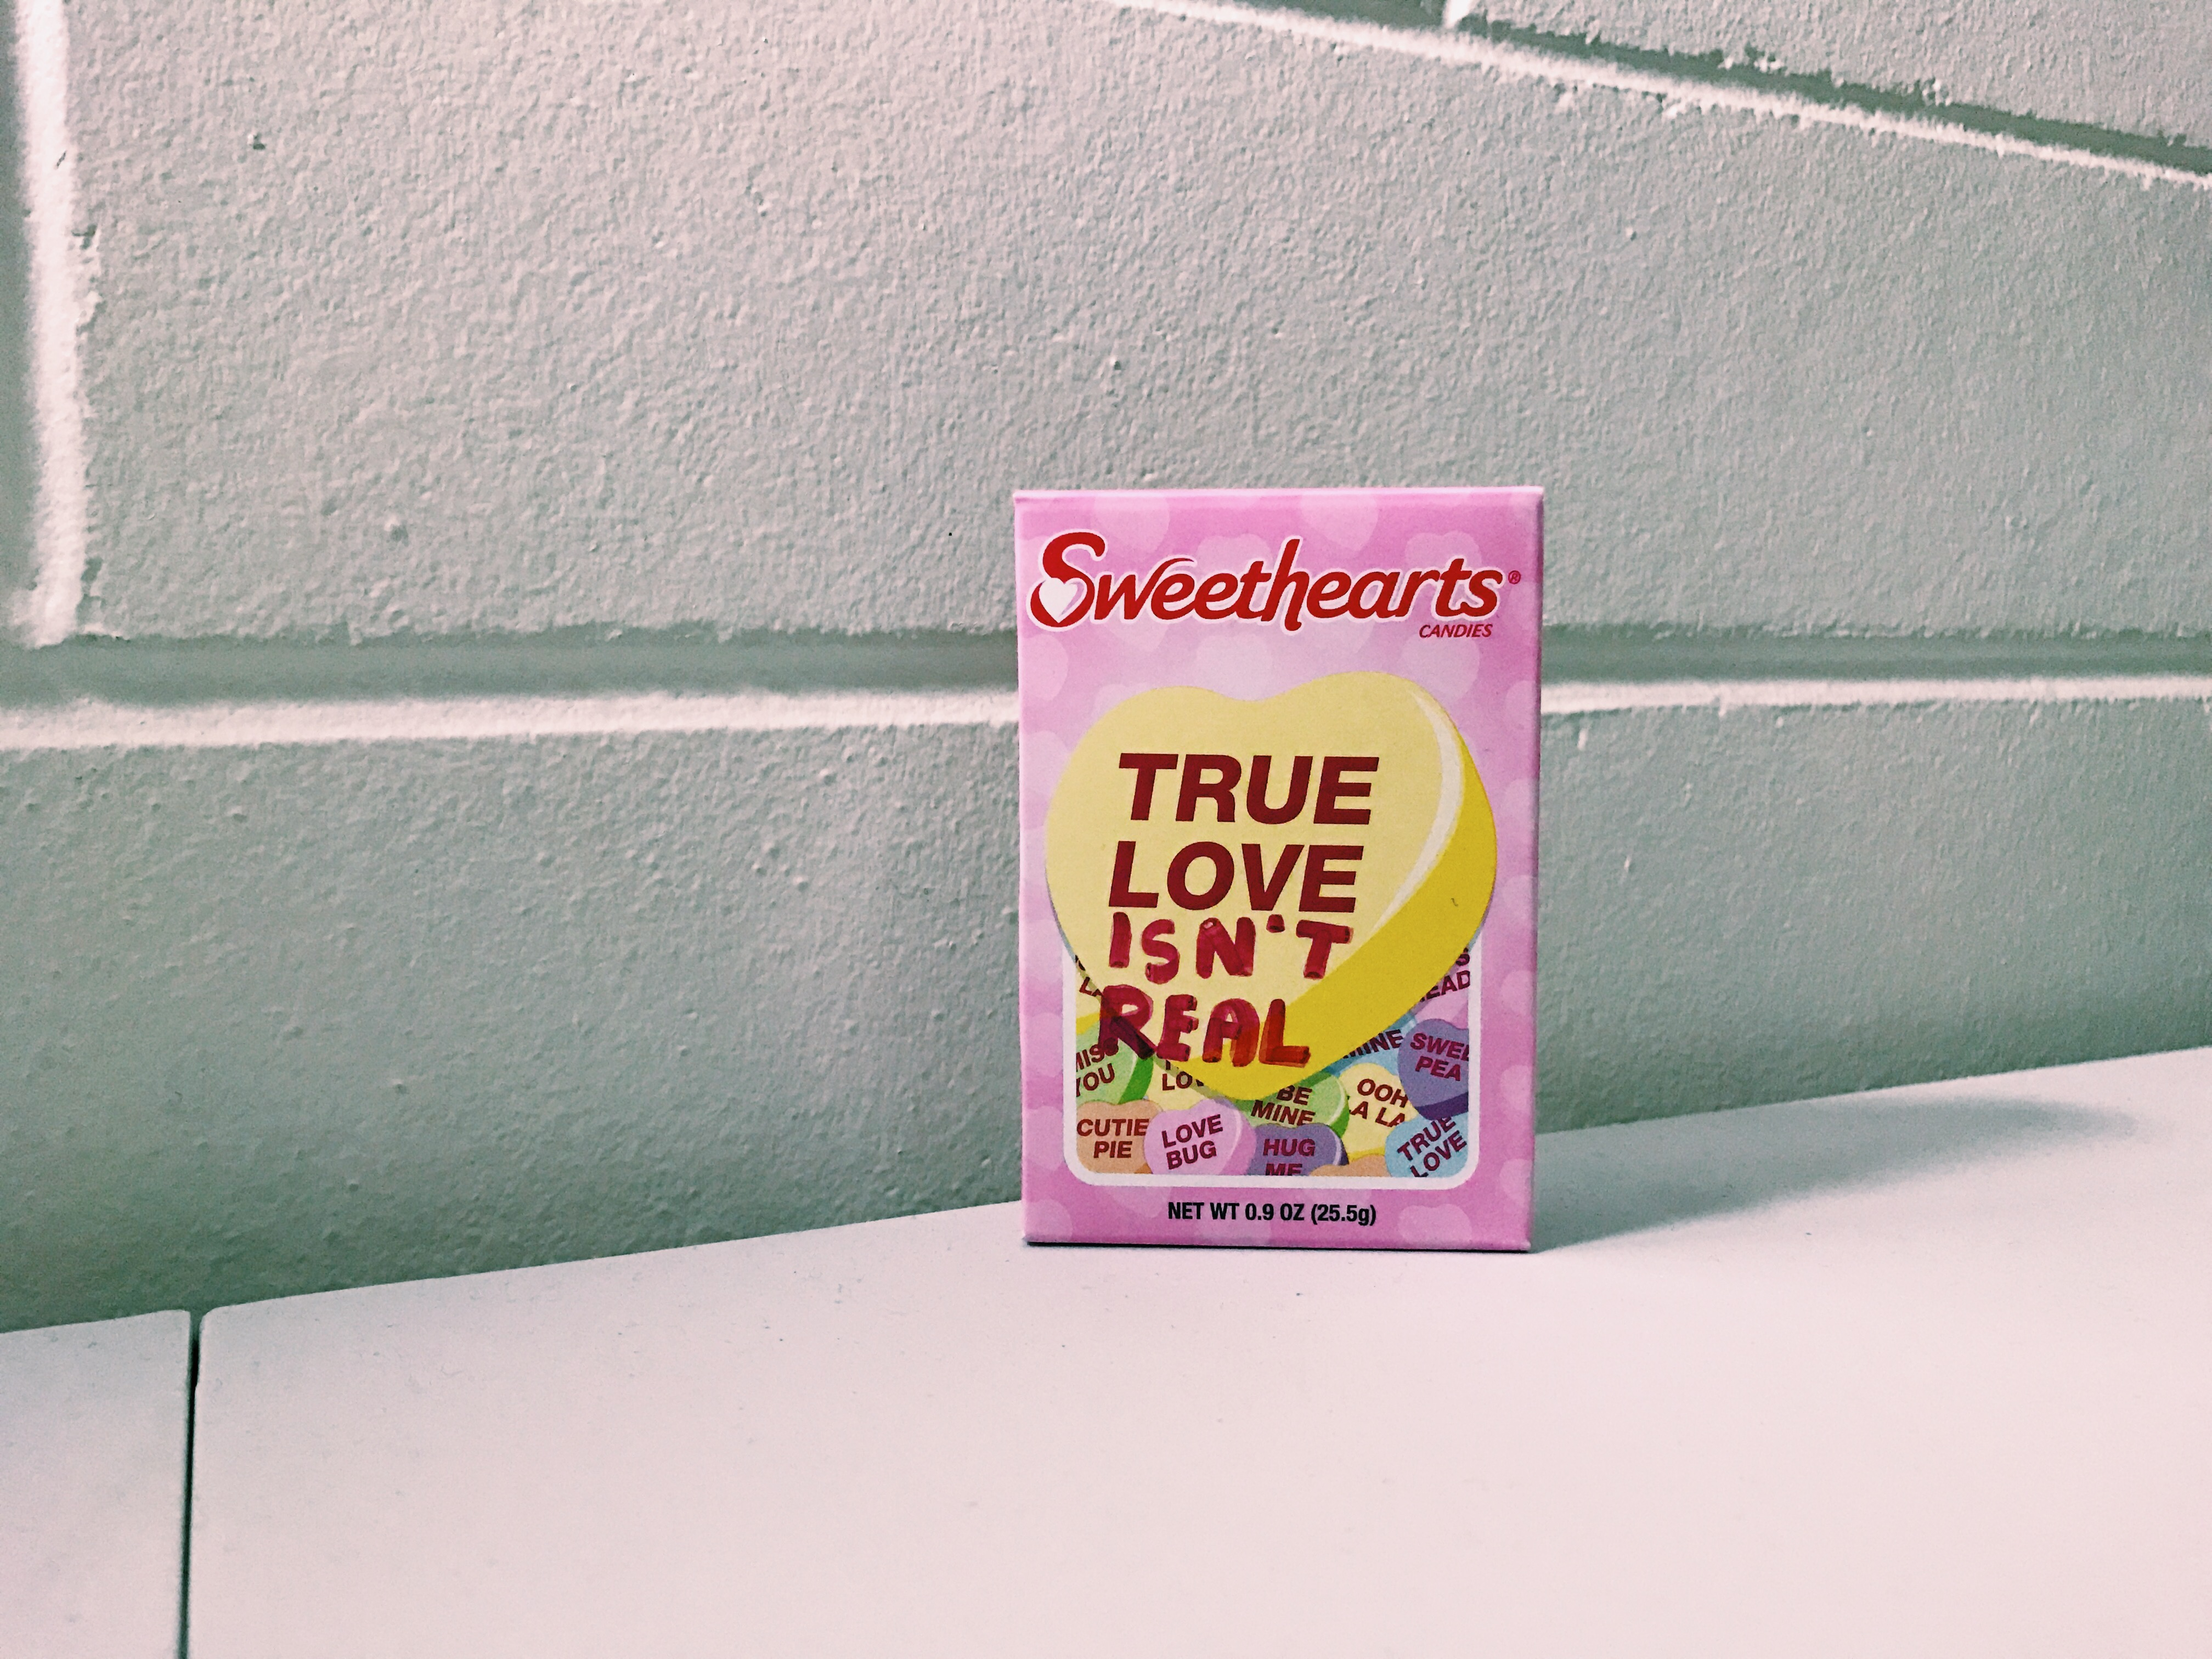 sweethearts true love isn't real cody schenider